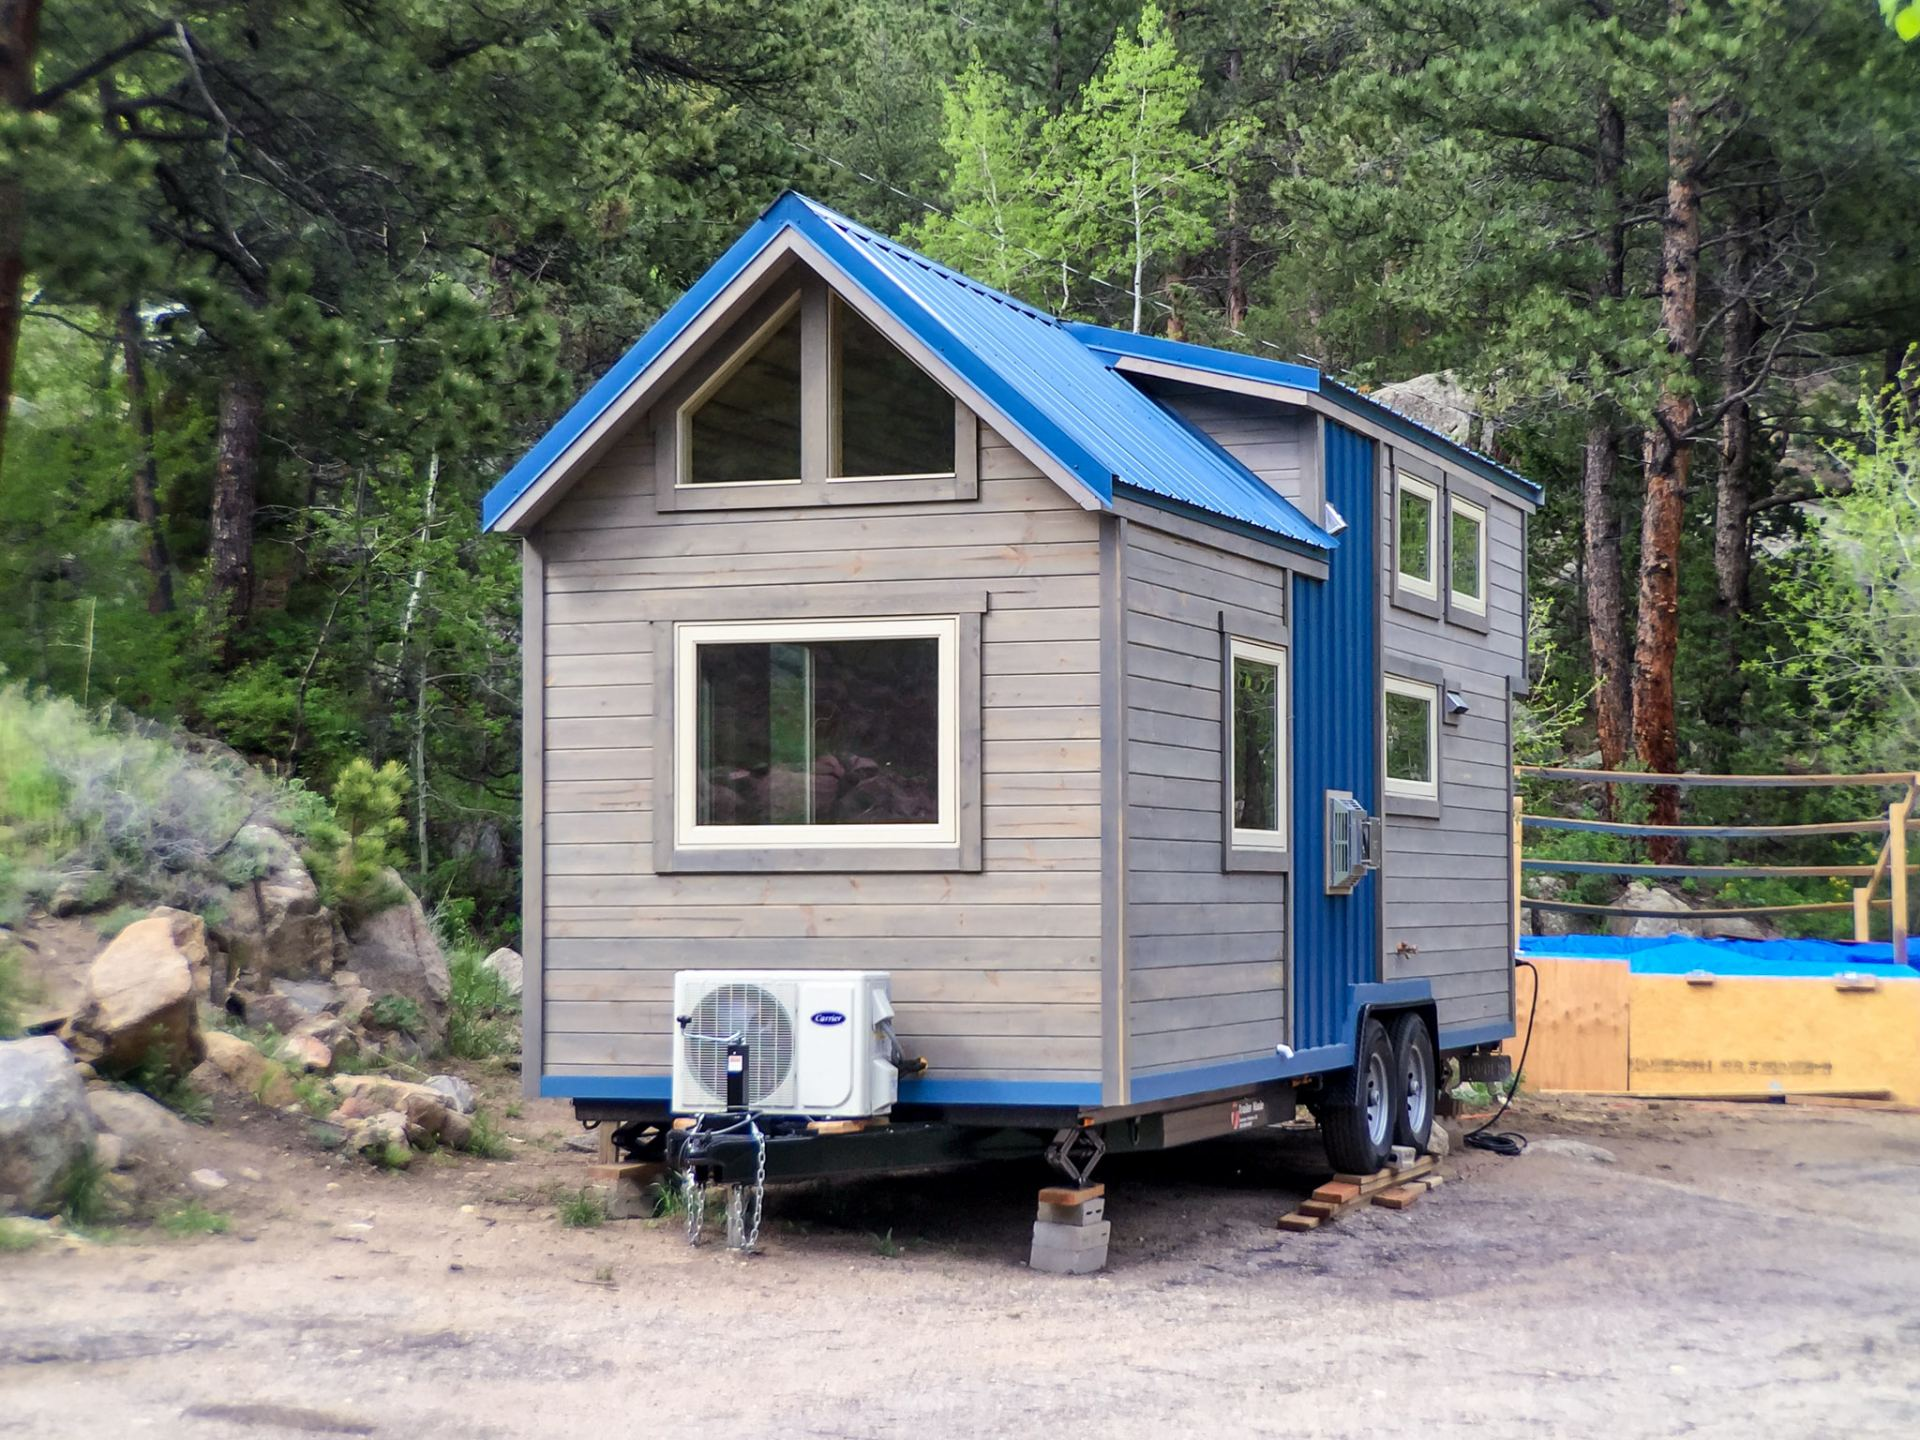 Pleasing Off Grid Tiny House Builders Simblissity Tiny Homes Largest Home Design Picture Inspirations Pitcheantrous